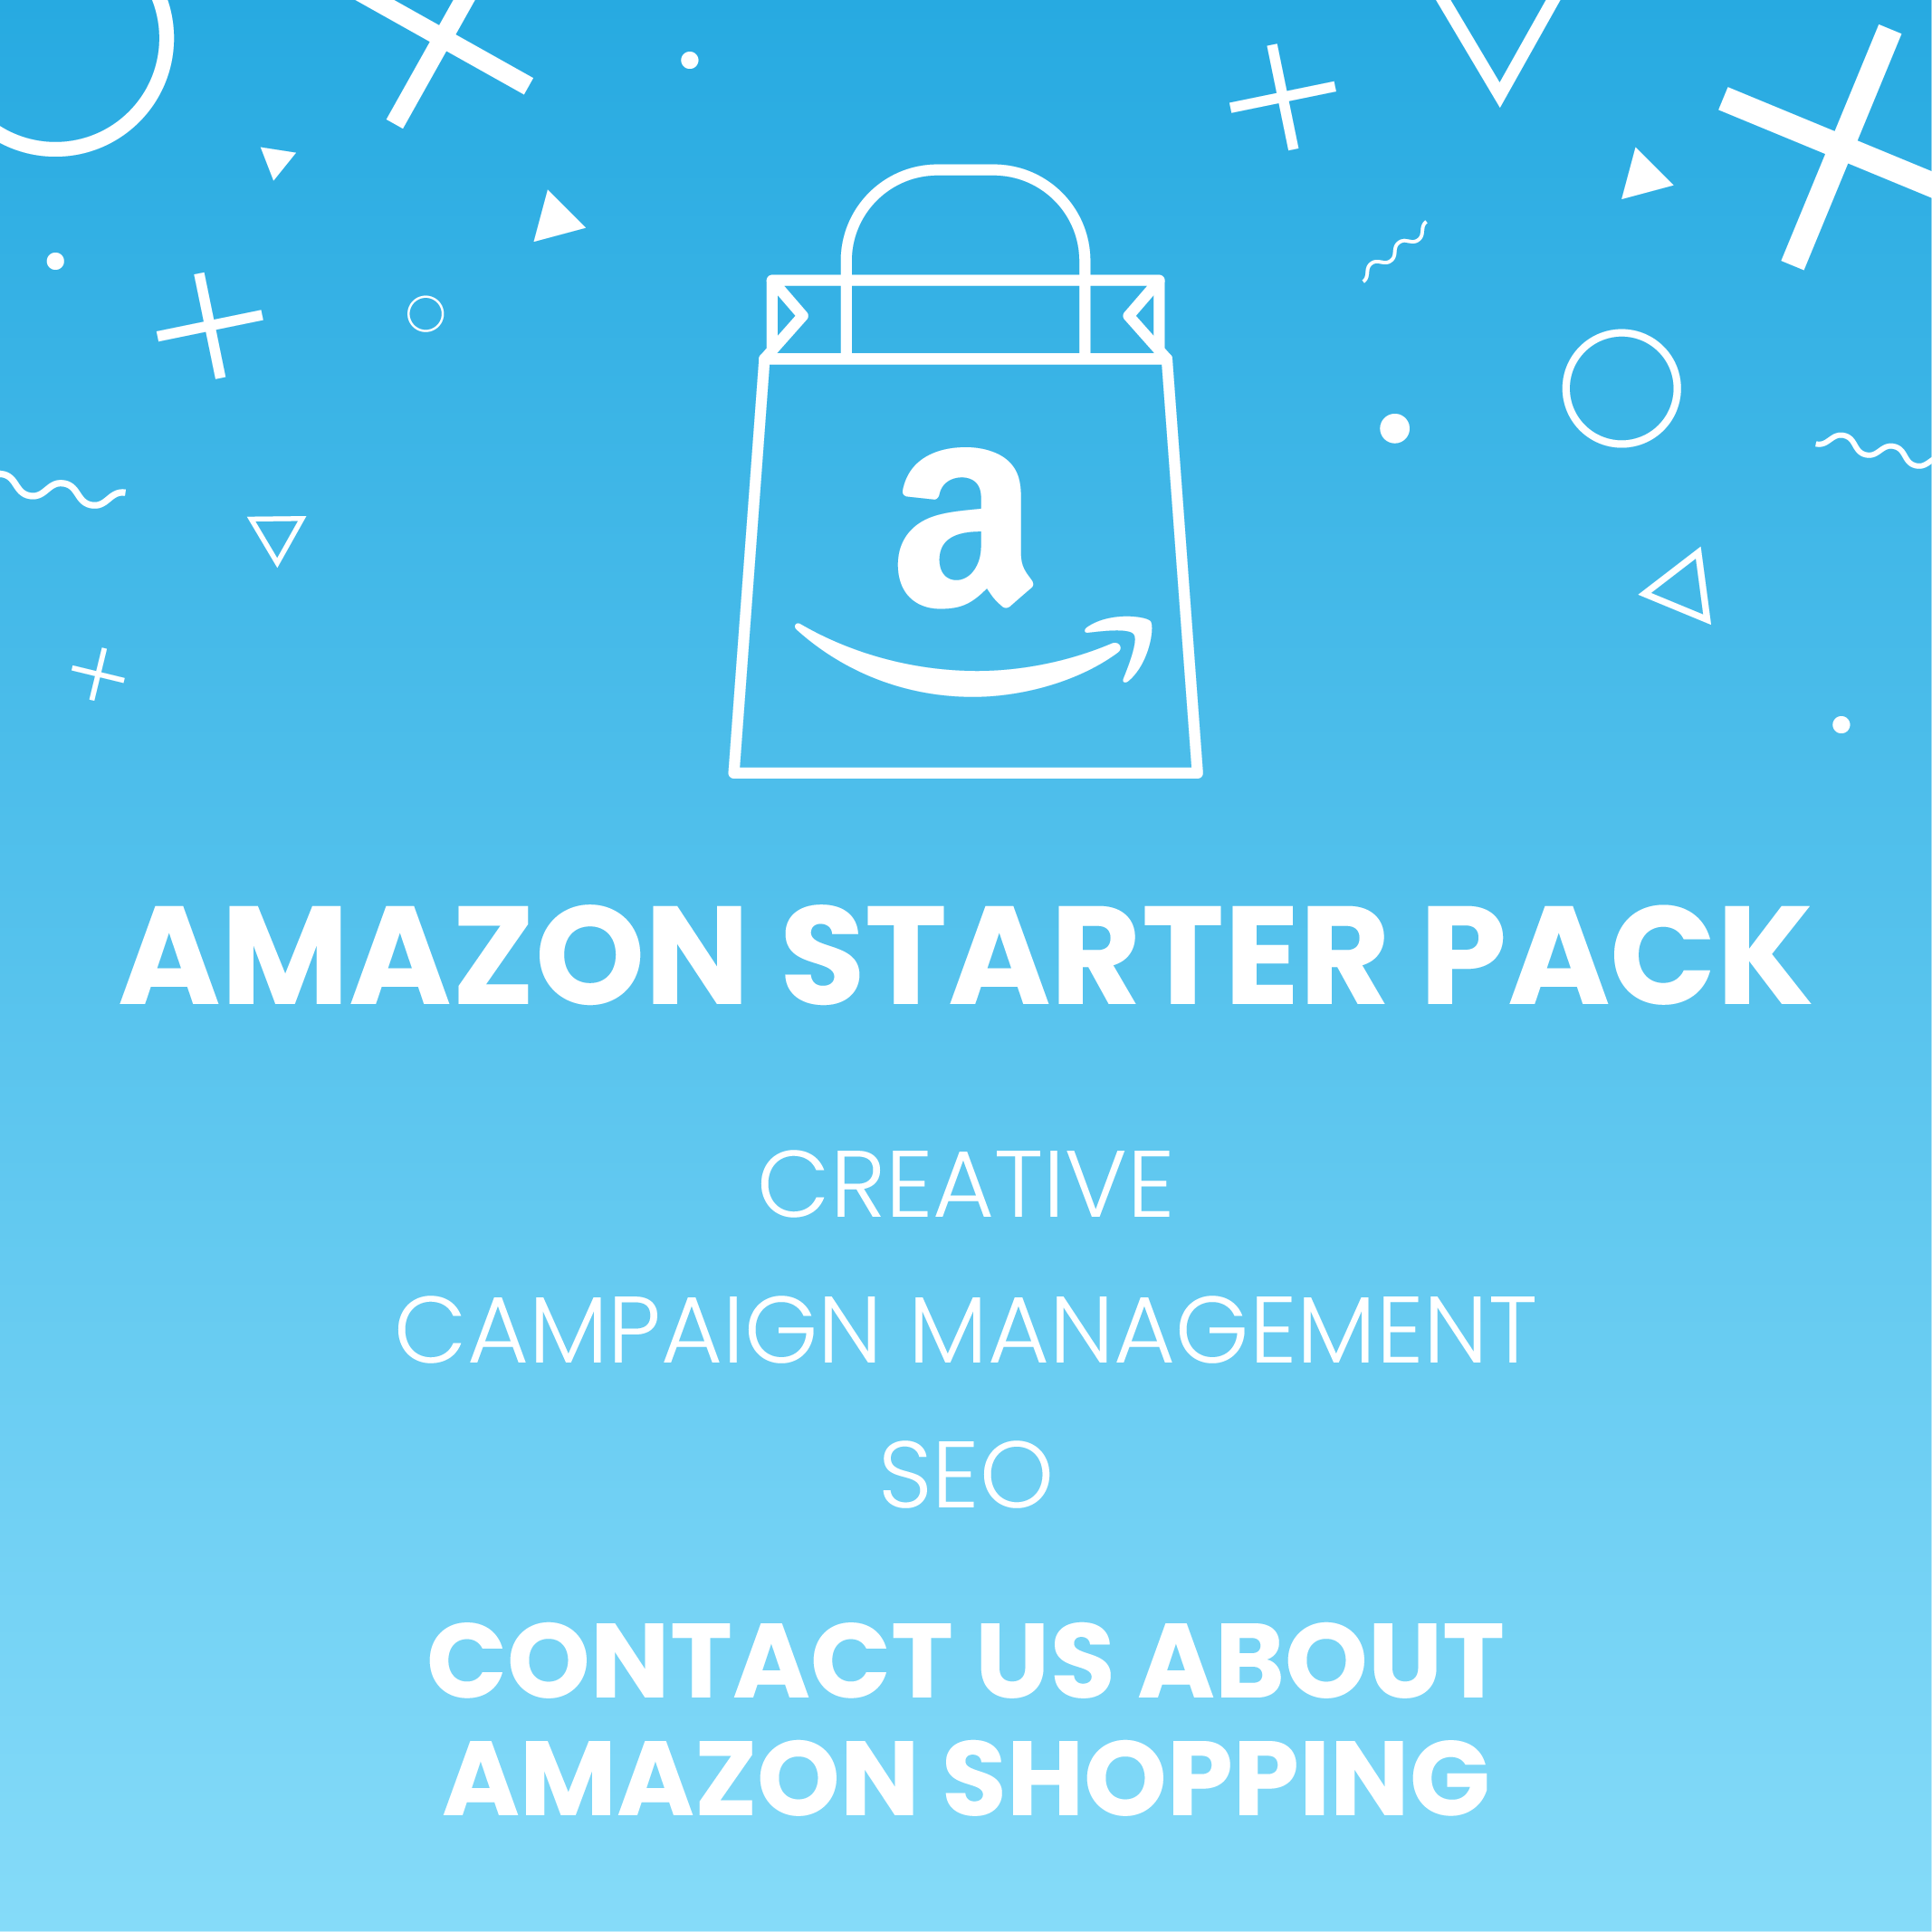 amazon static ad variation 2-01.png